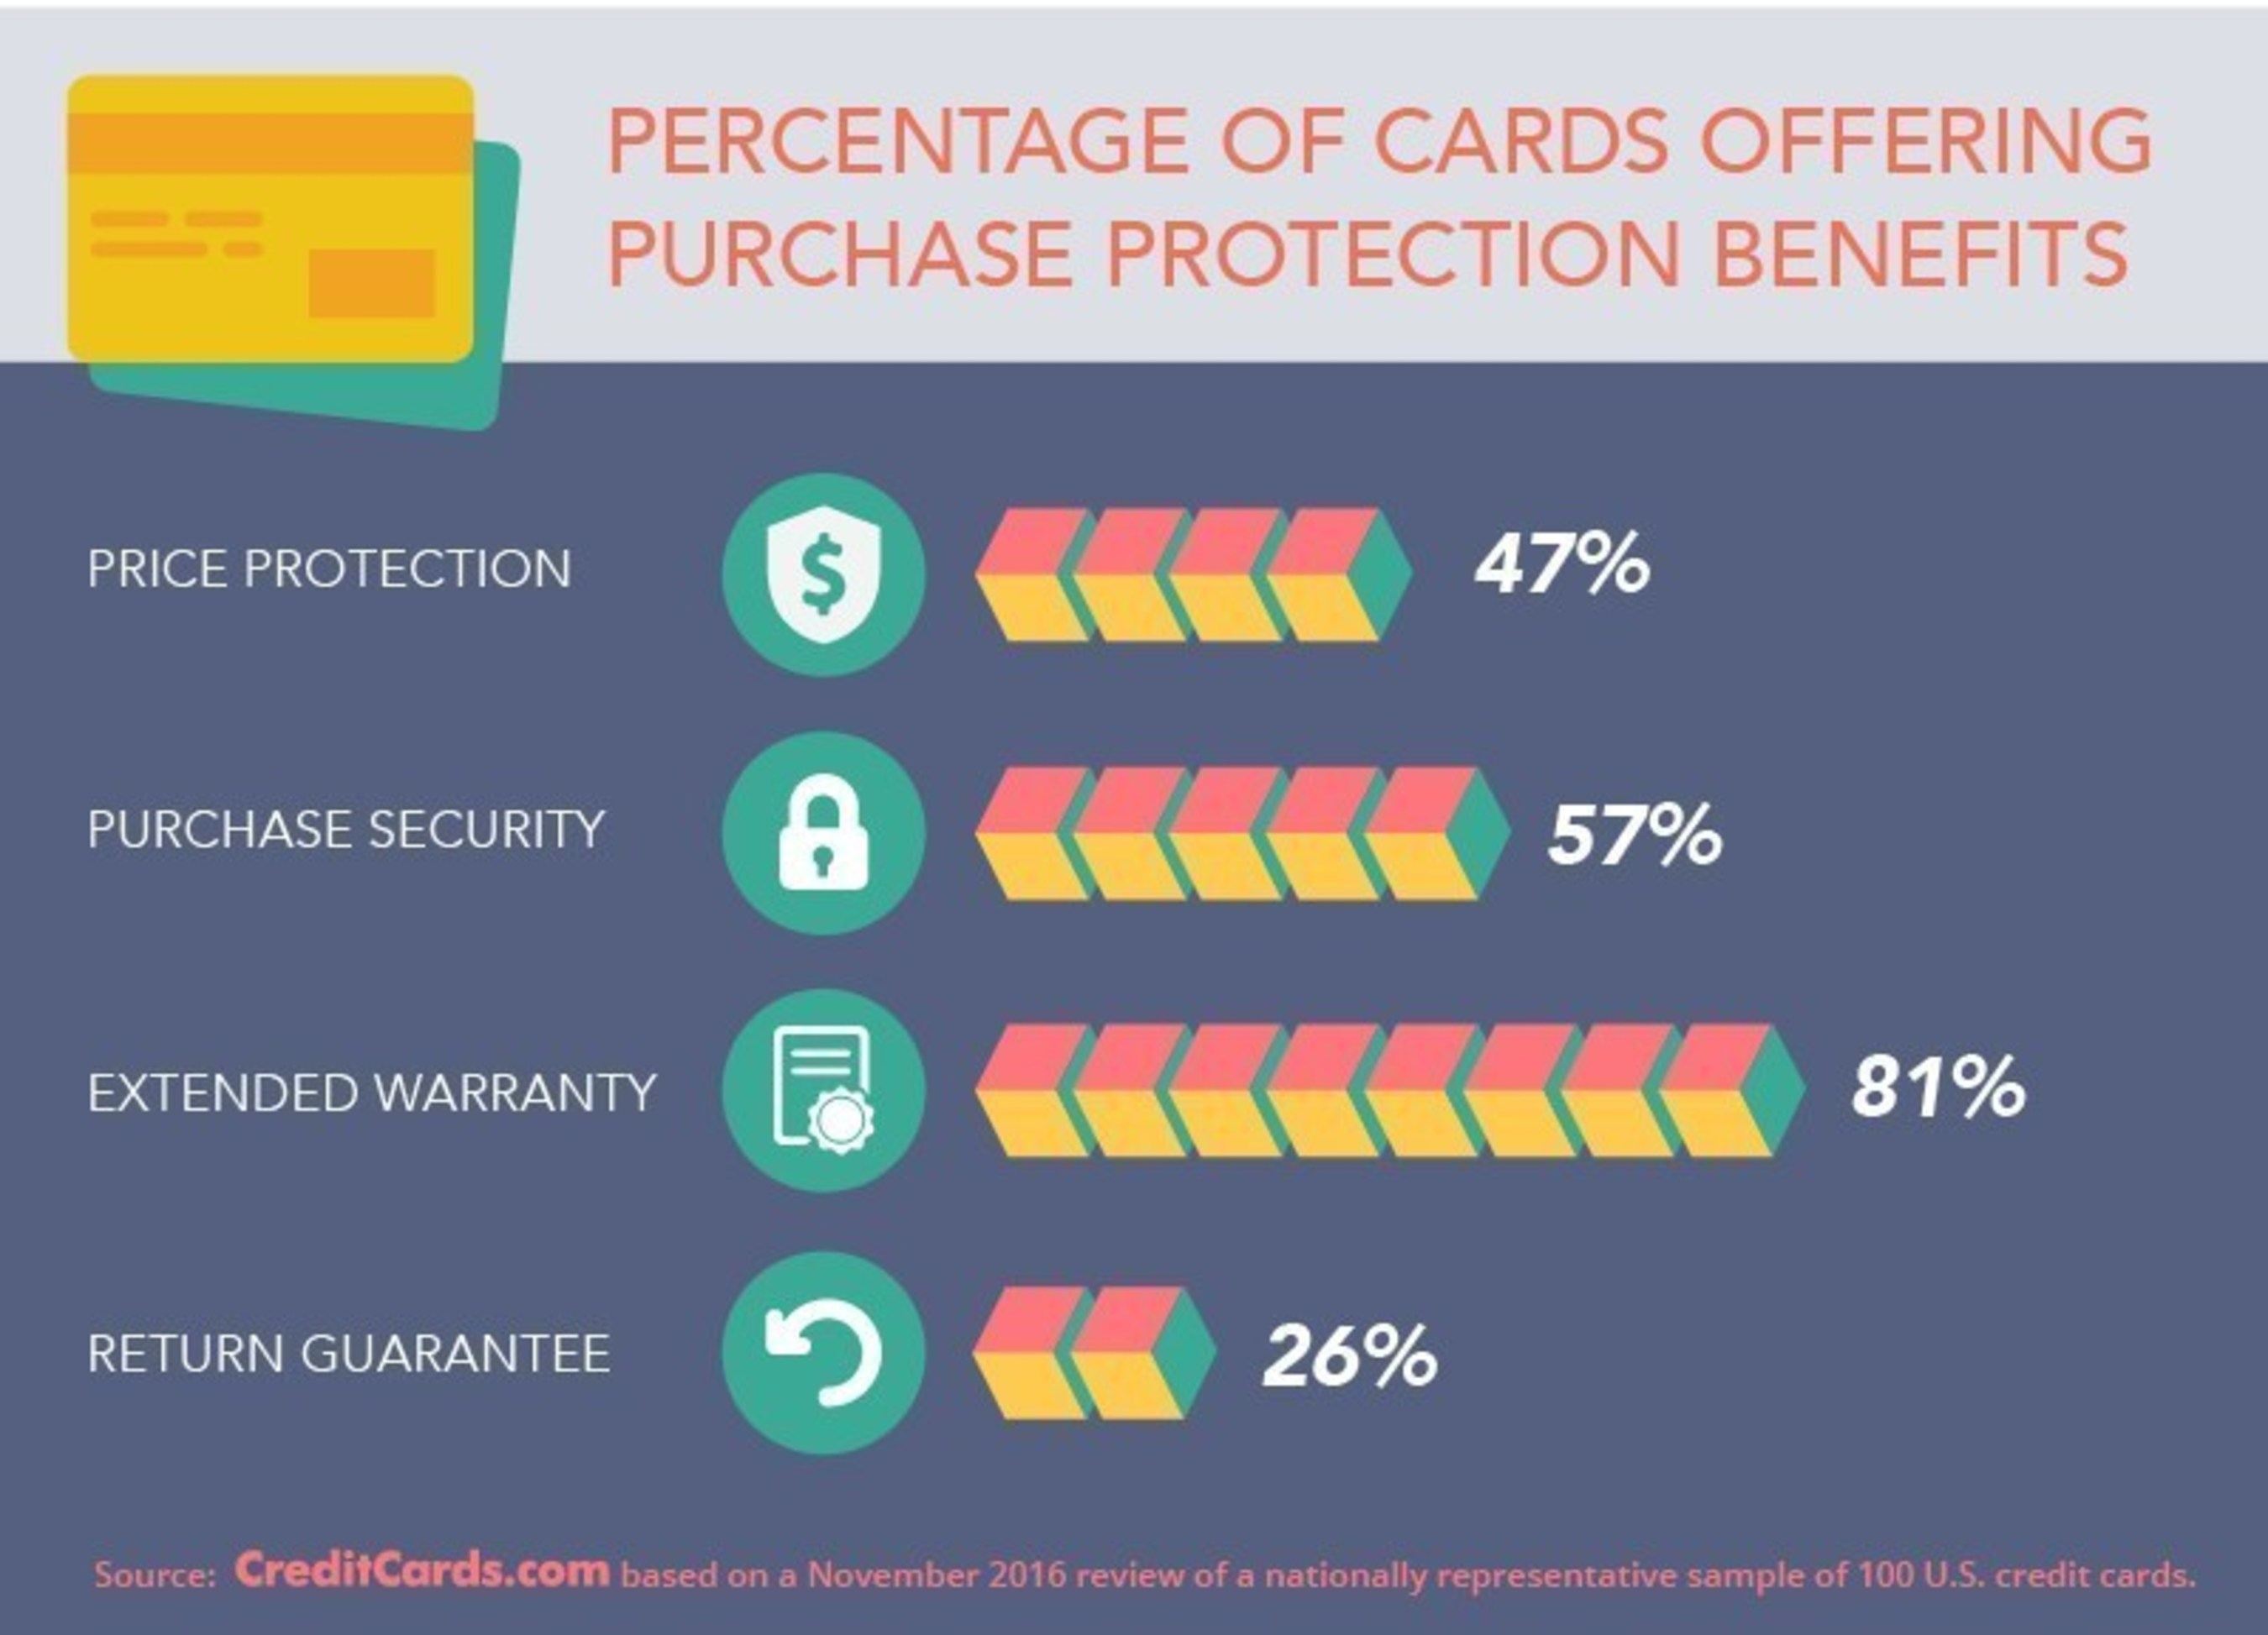 Holiday shoppers should take advantage of free credit card perks such as extended warranties, purchase security, price protection and guaranteed returns.